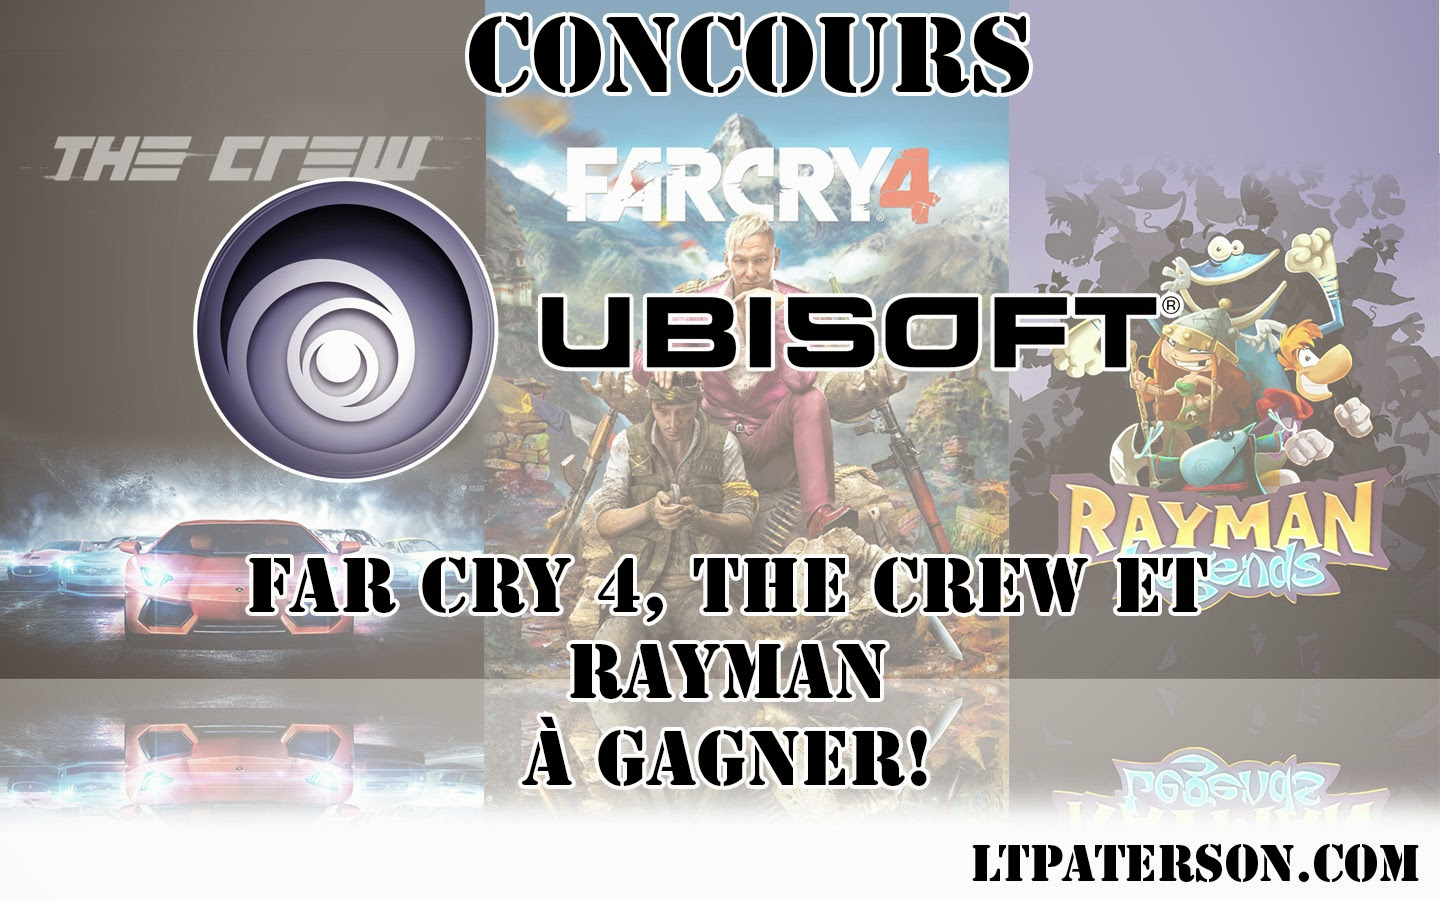 concours far cry 4 the crew et rayman legends gagner blog jeux video pc. Black Bedroom Furniture Sets. Home Design Ideas